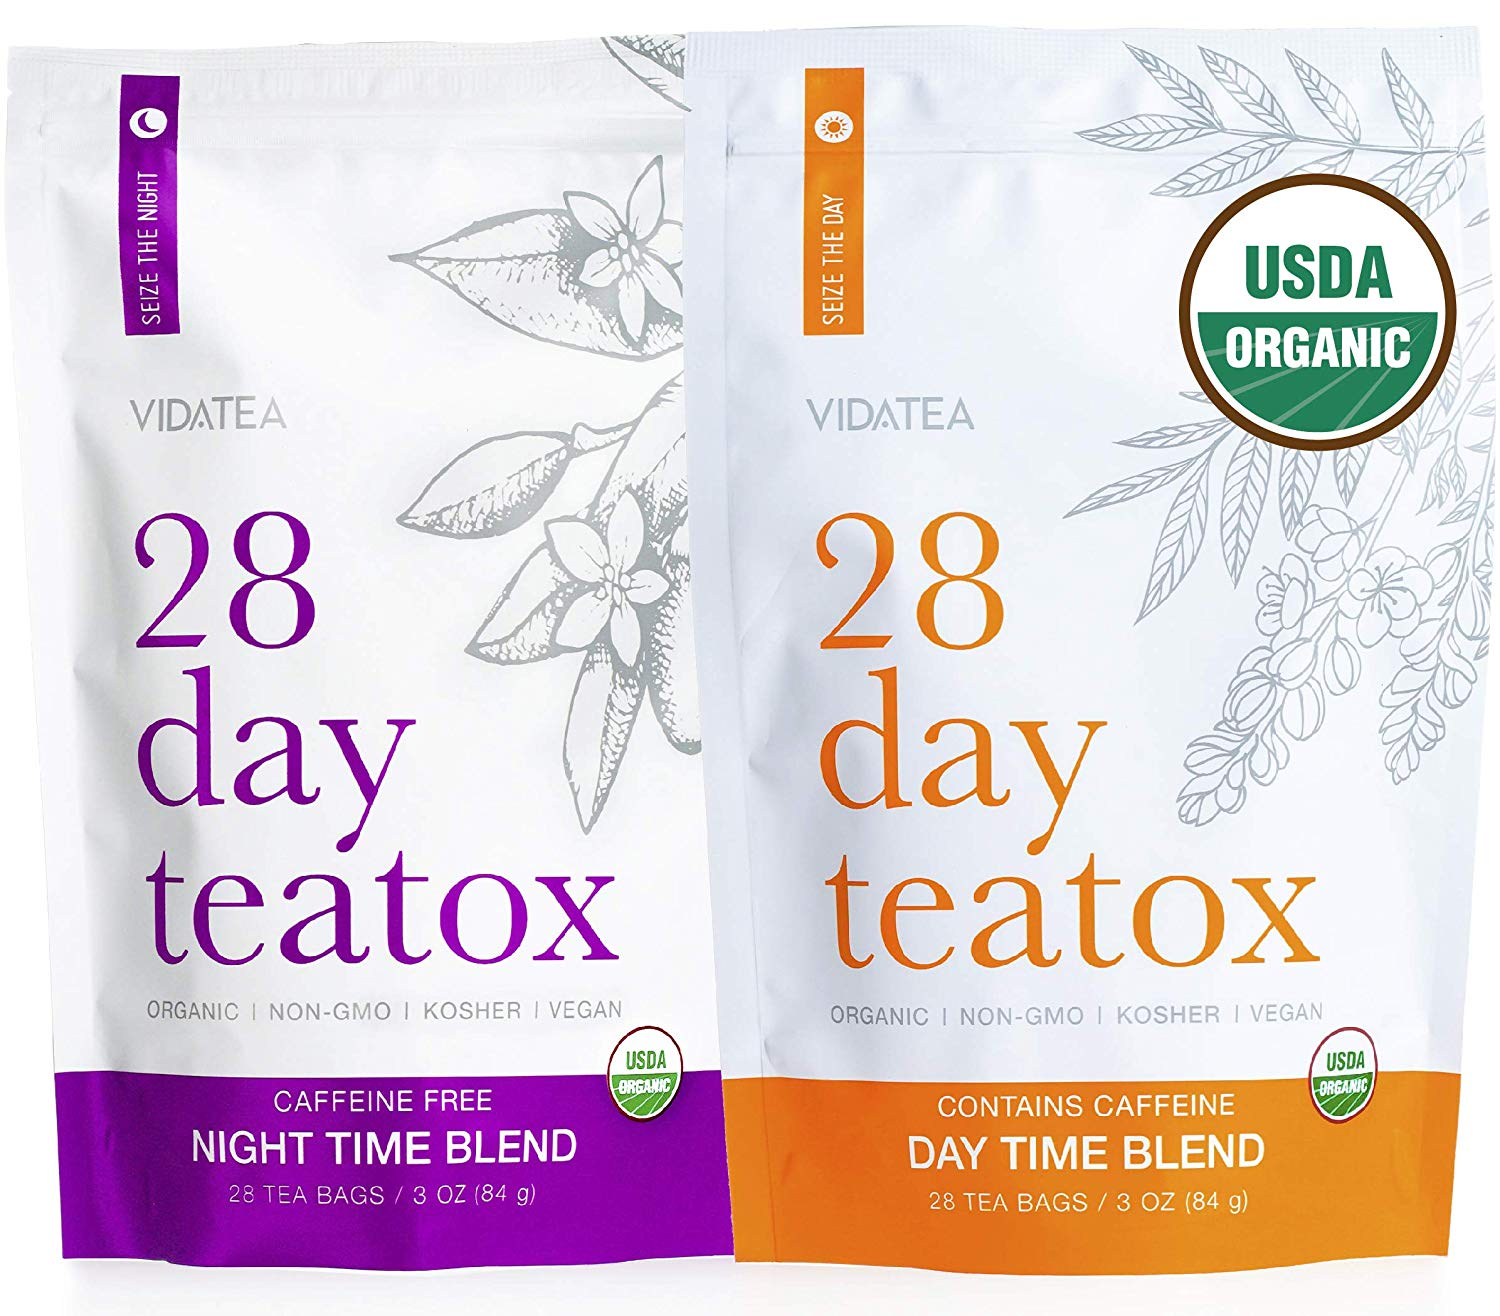 Vida Tea 28 Day and Night Organic Detox Tea - All Natural Healthy Herbal Tea Supplement for a Colon Cleanse, Liver, and Stomach Digestion, Weight Loss, and Energy -56 Servings